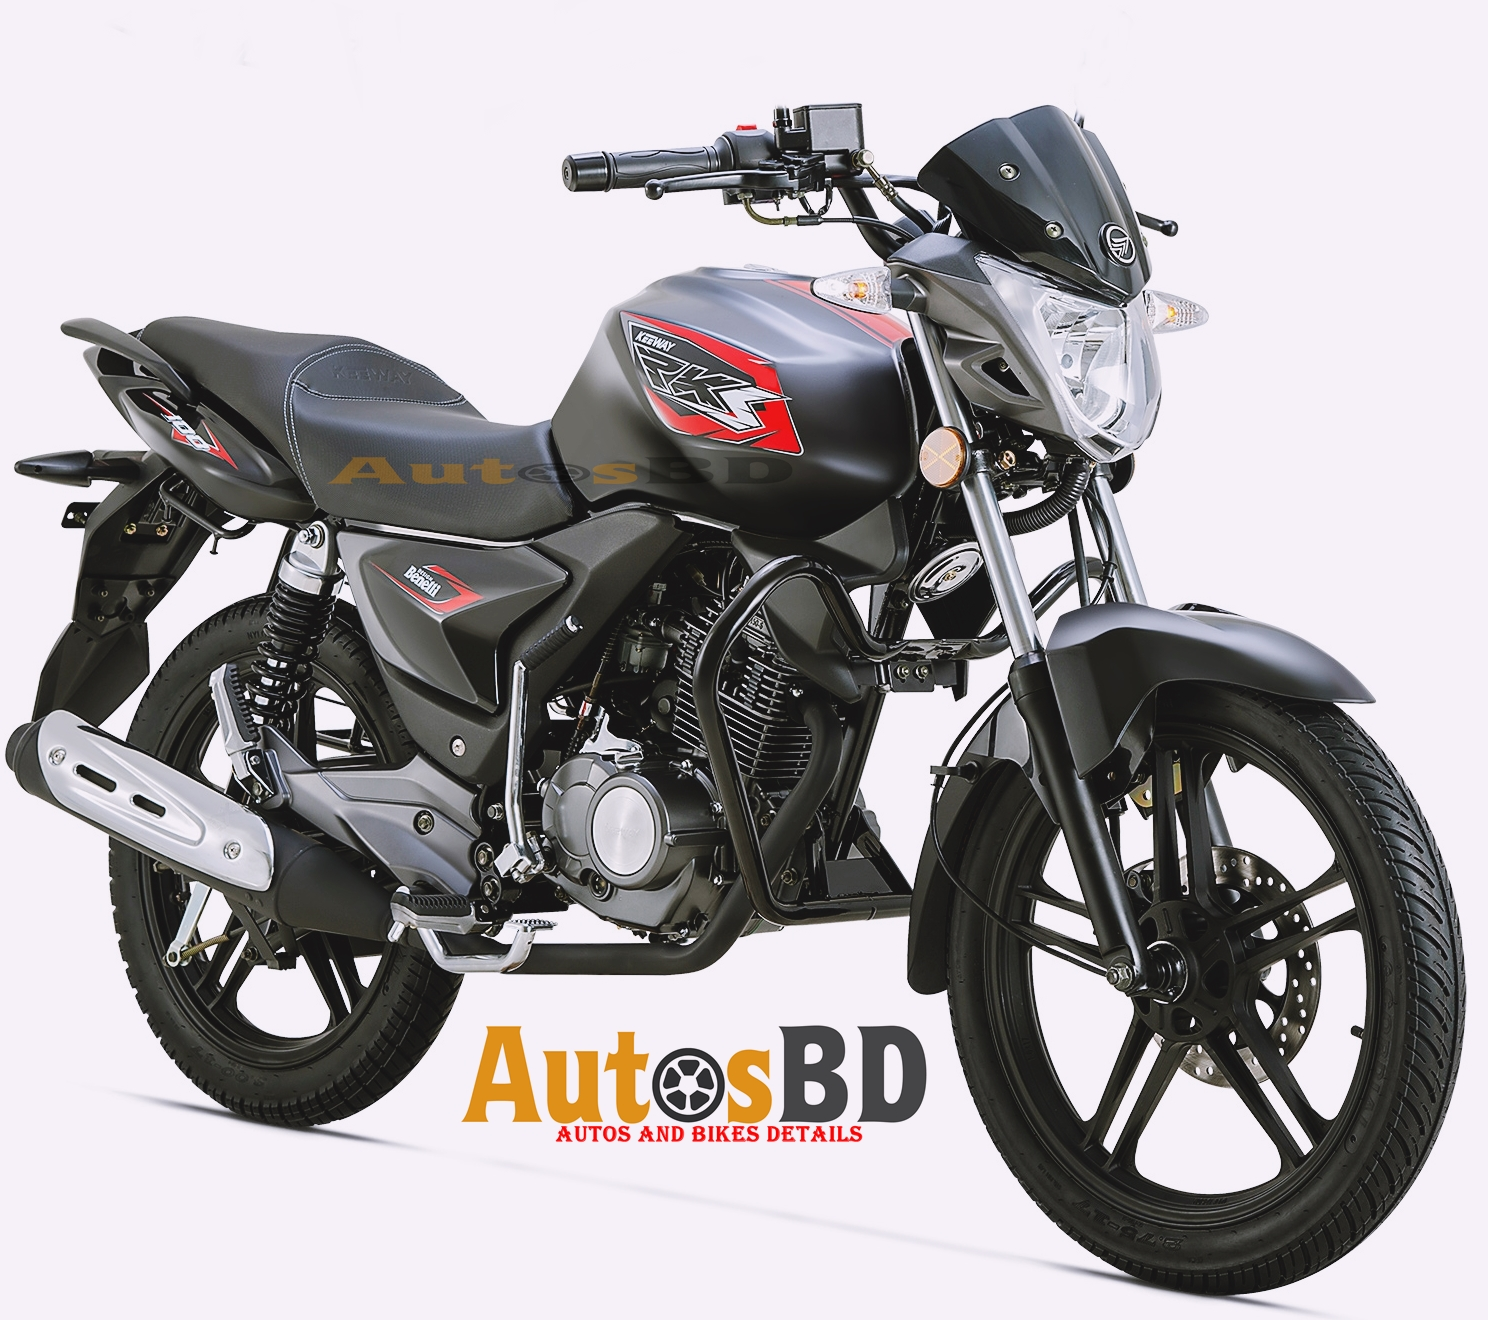 Keeway RKS 100 v3 Motorcycle Specification